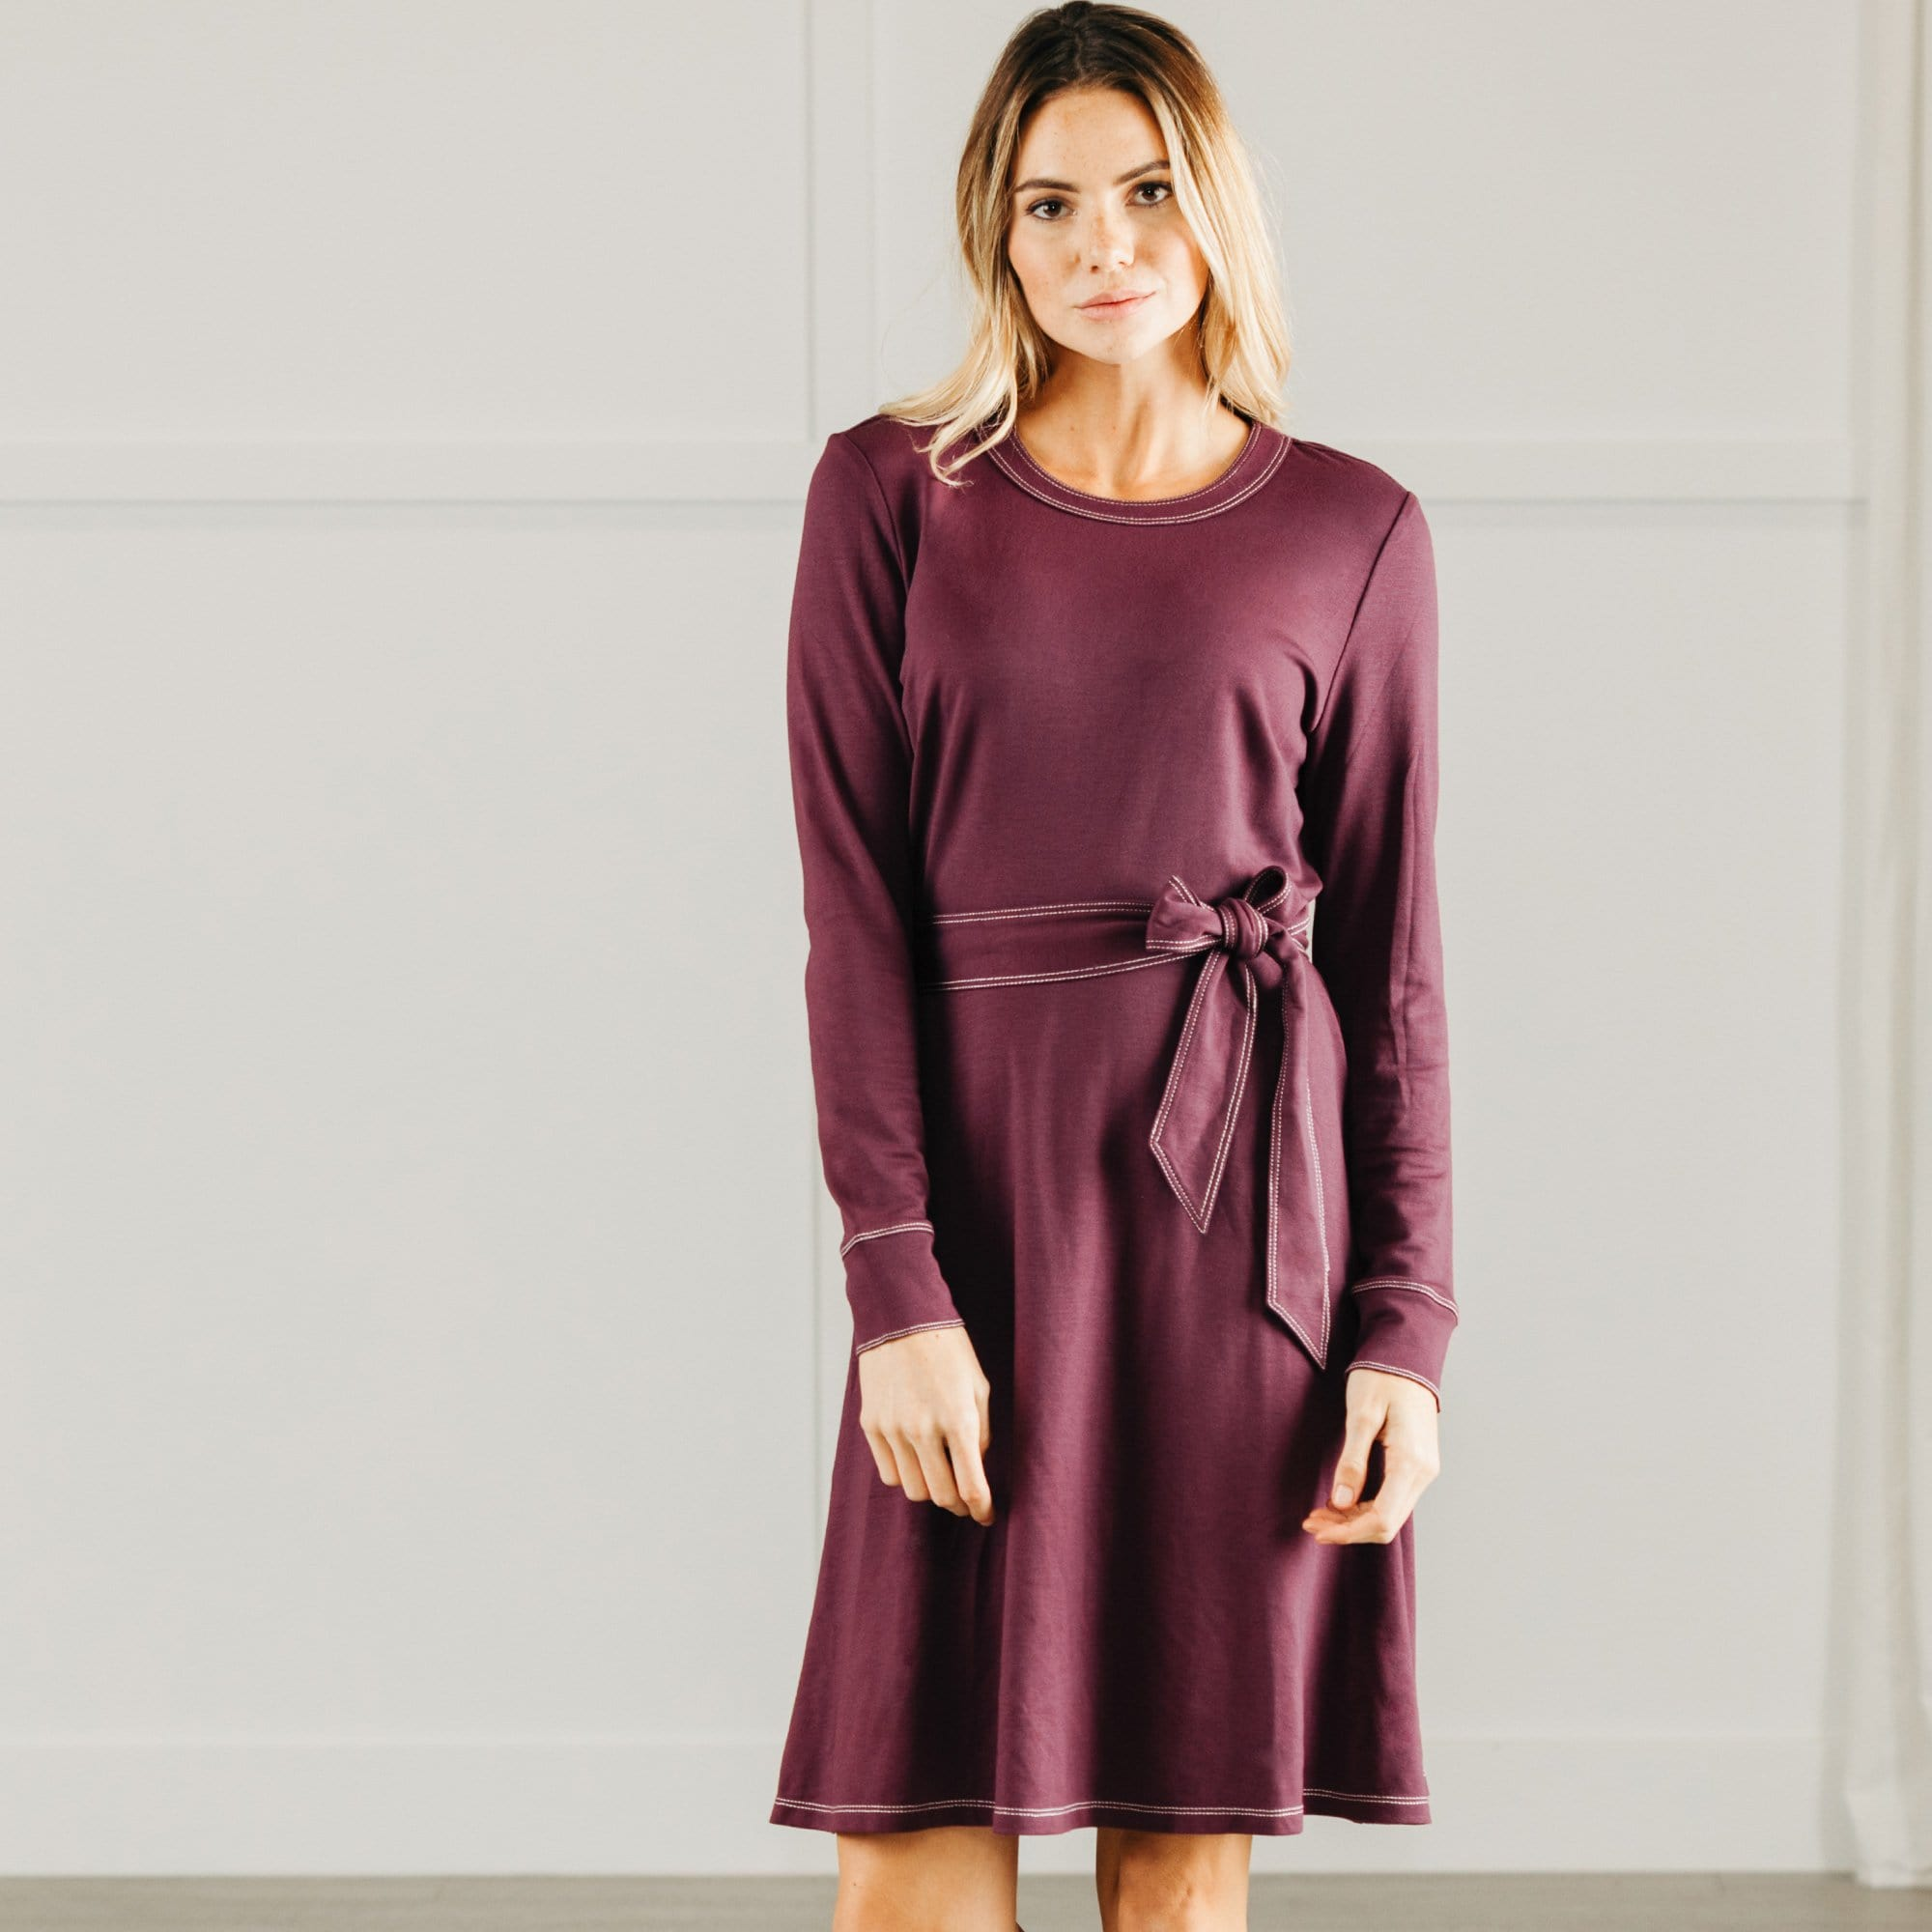 Contrast Stitch Belted Dress